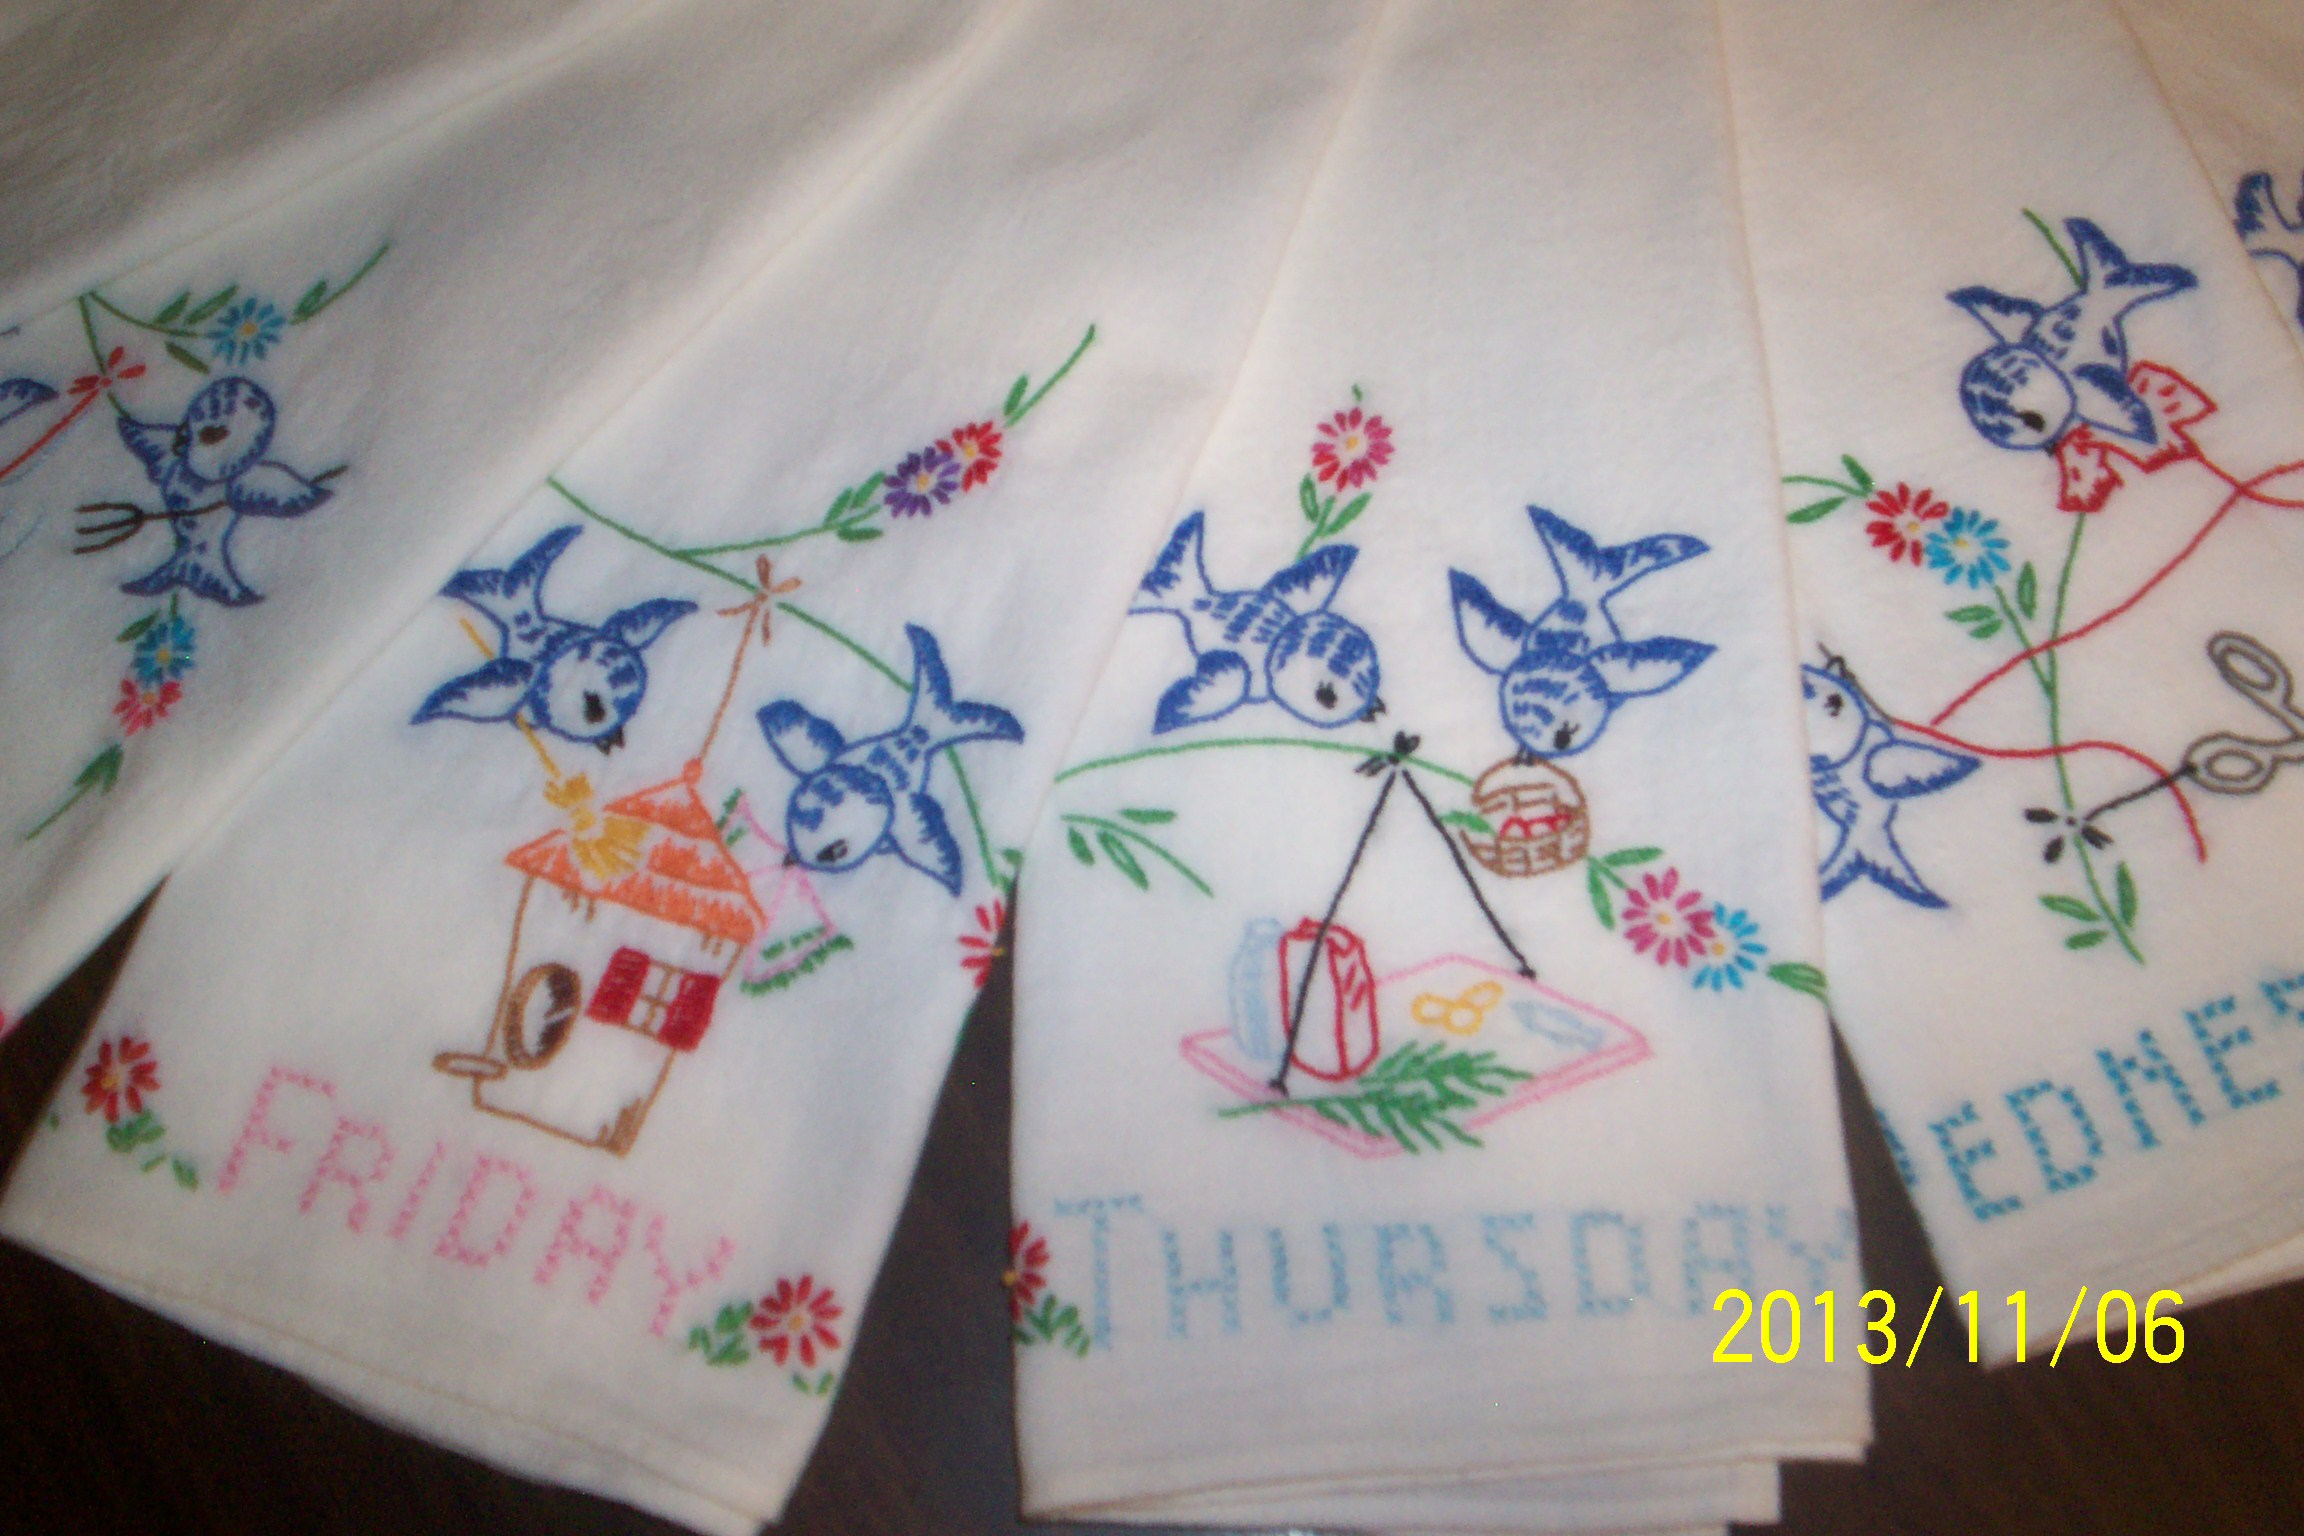 This Is A Set Of Hand Embroidered Flour Sack Towels That I Have Been  Working On Must Say Machine Embroidery Sure Is Faster And Easier